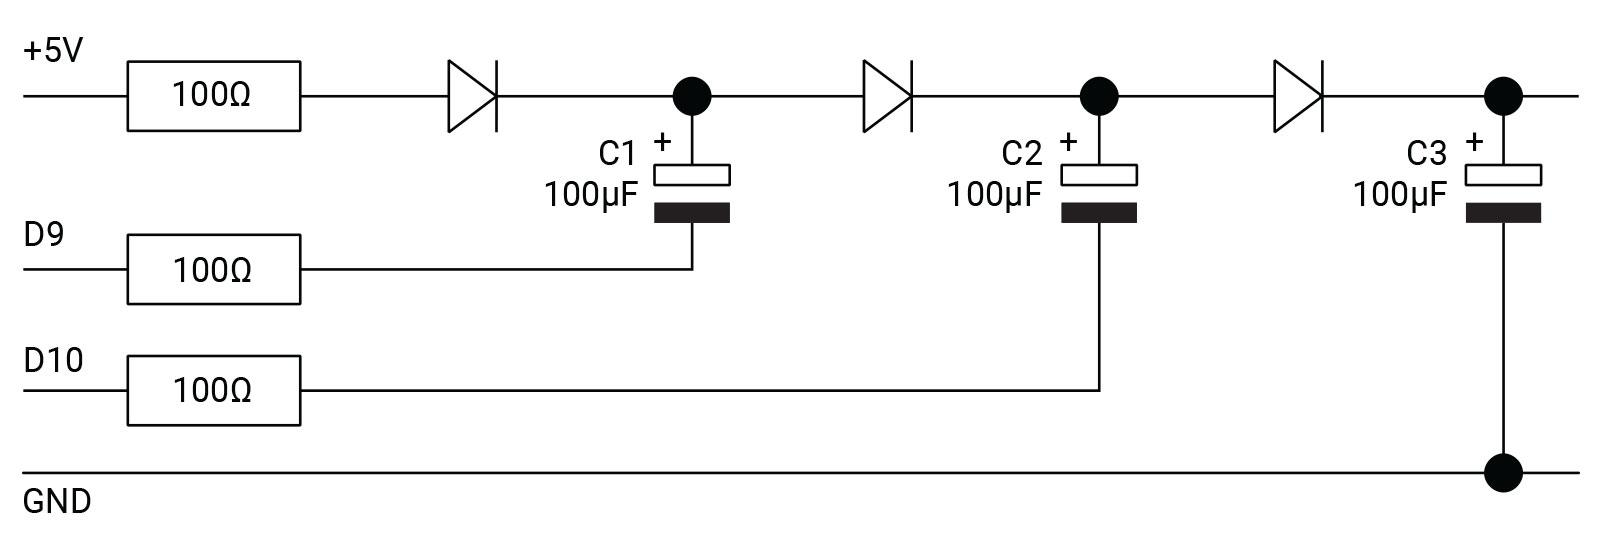 Arduino Pic Programmer Diyode Magazine The Form Below To Delete This Voltage Divider Circuit Diagram Some Pics Use Different Commands For Functions Which Is Part Of Difficulty In Building A Universal